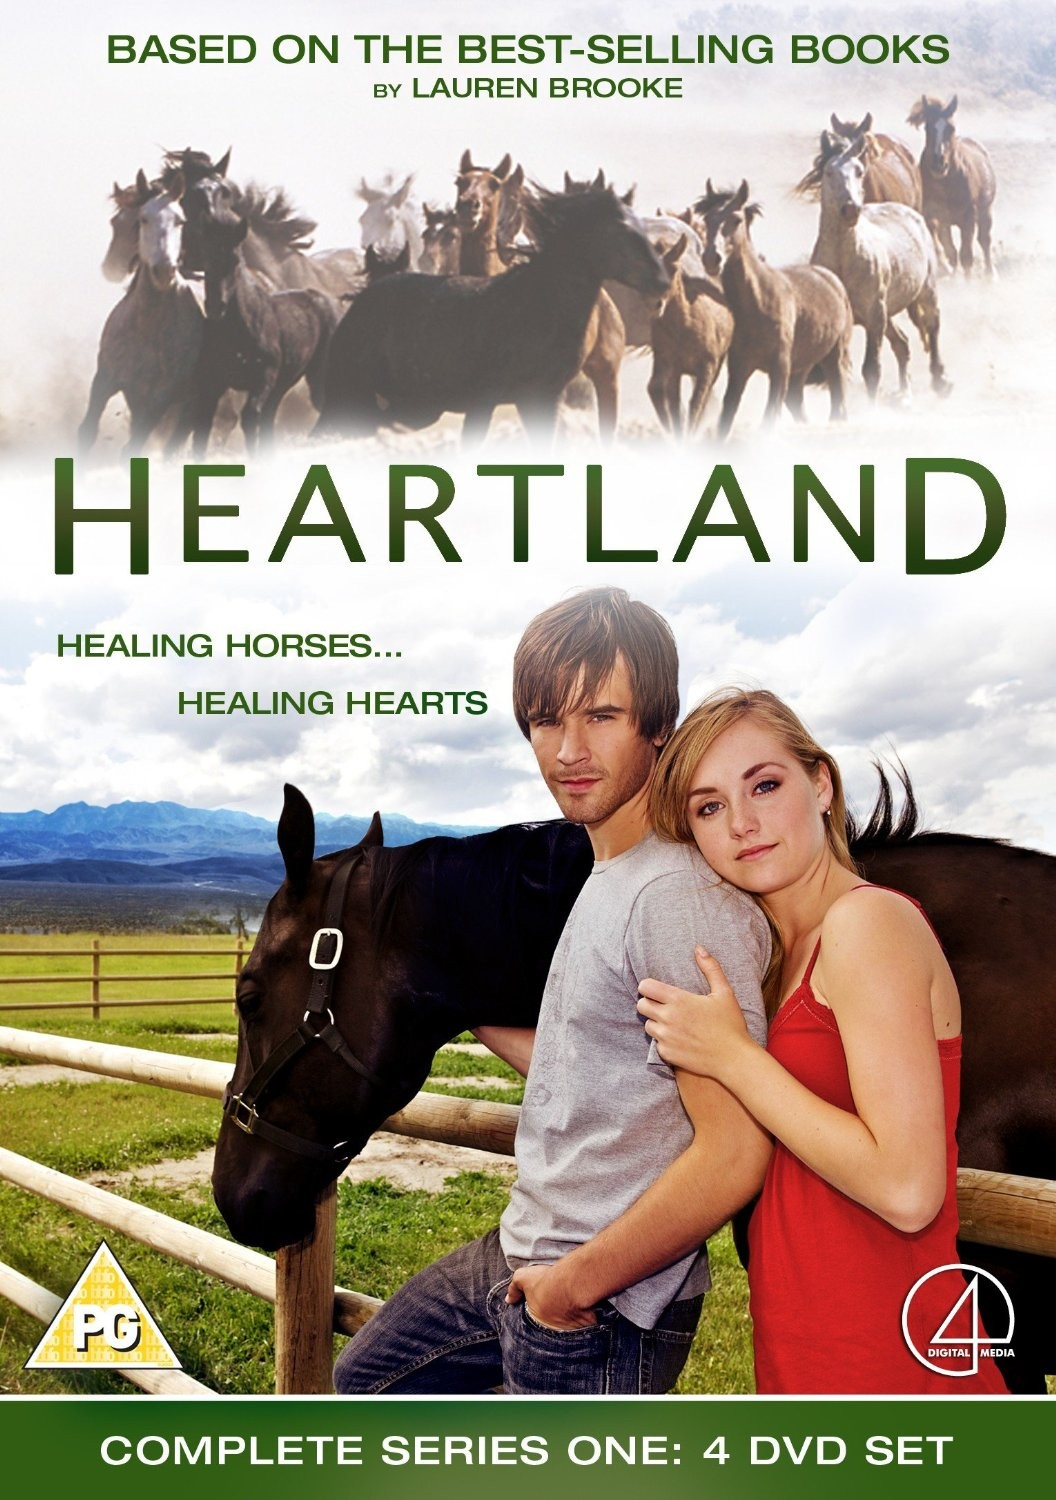 Heartland The Complete Series One DVD Box Set from trot-online